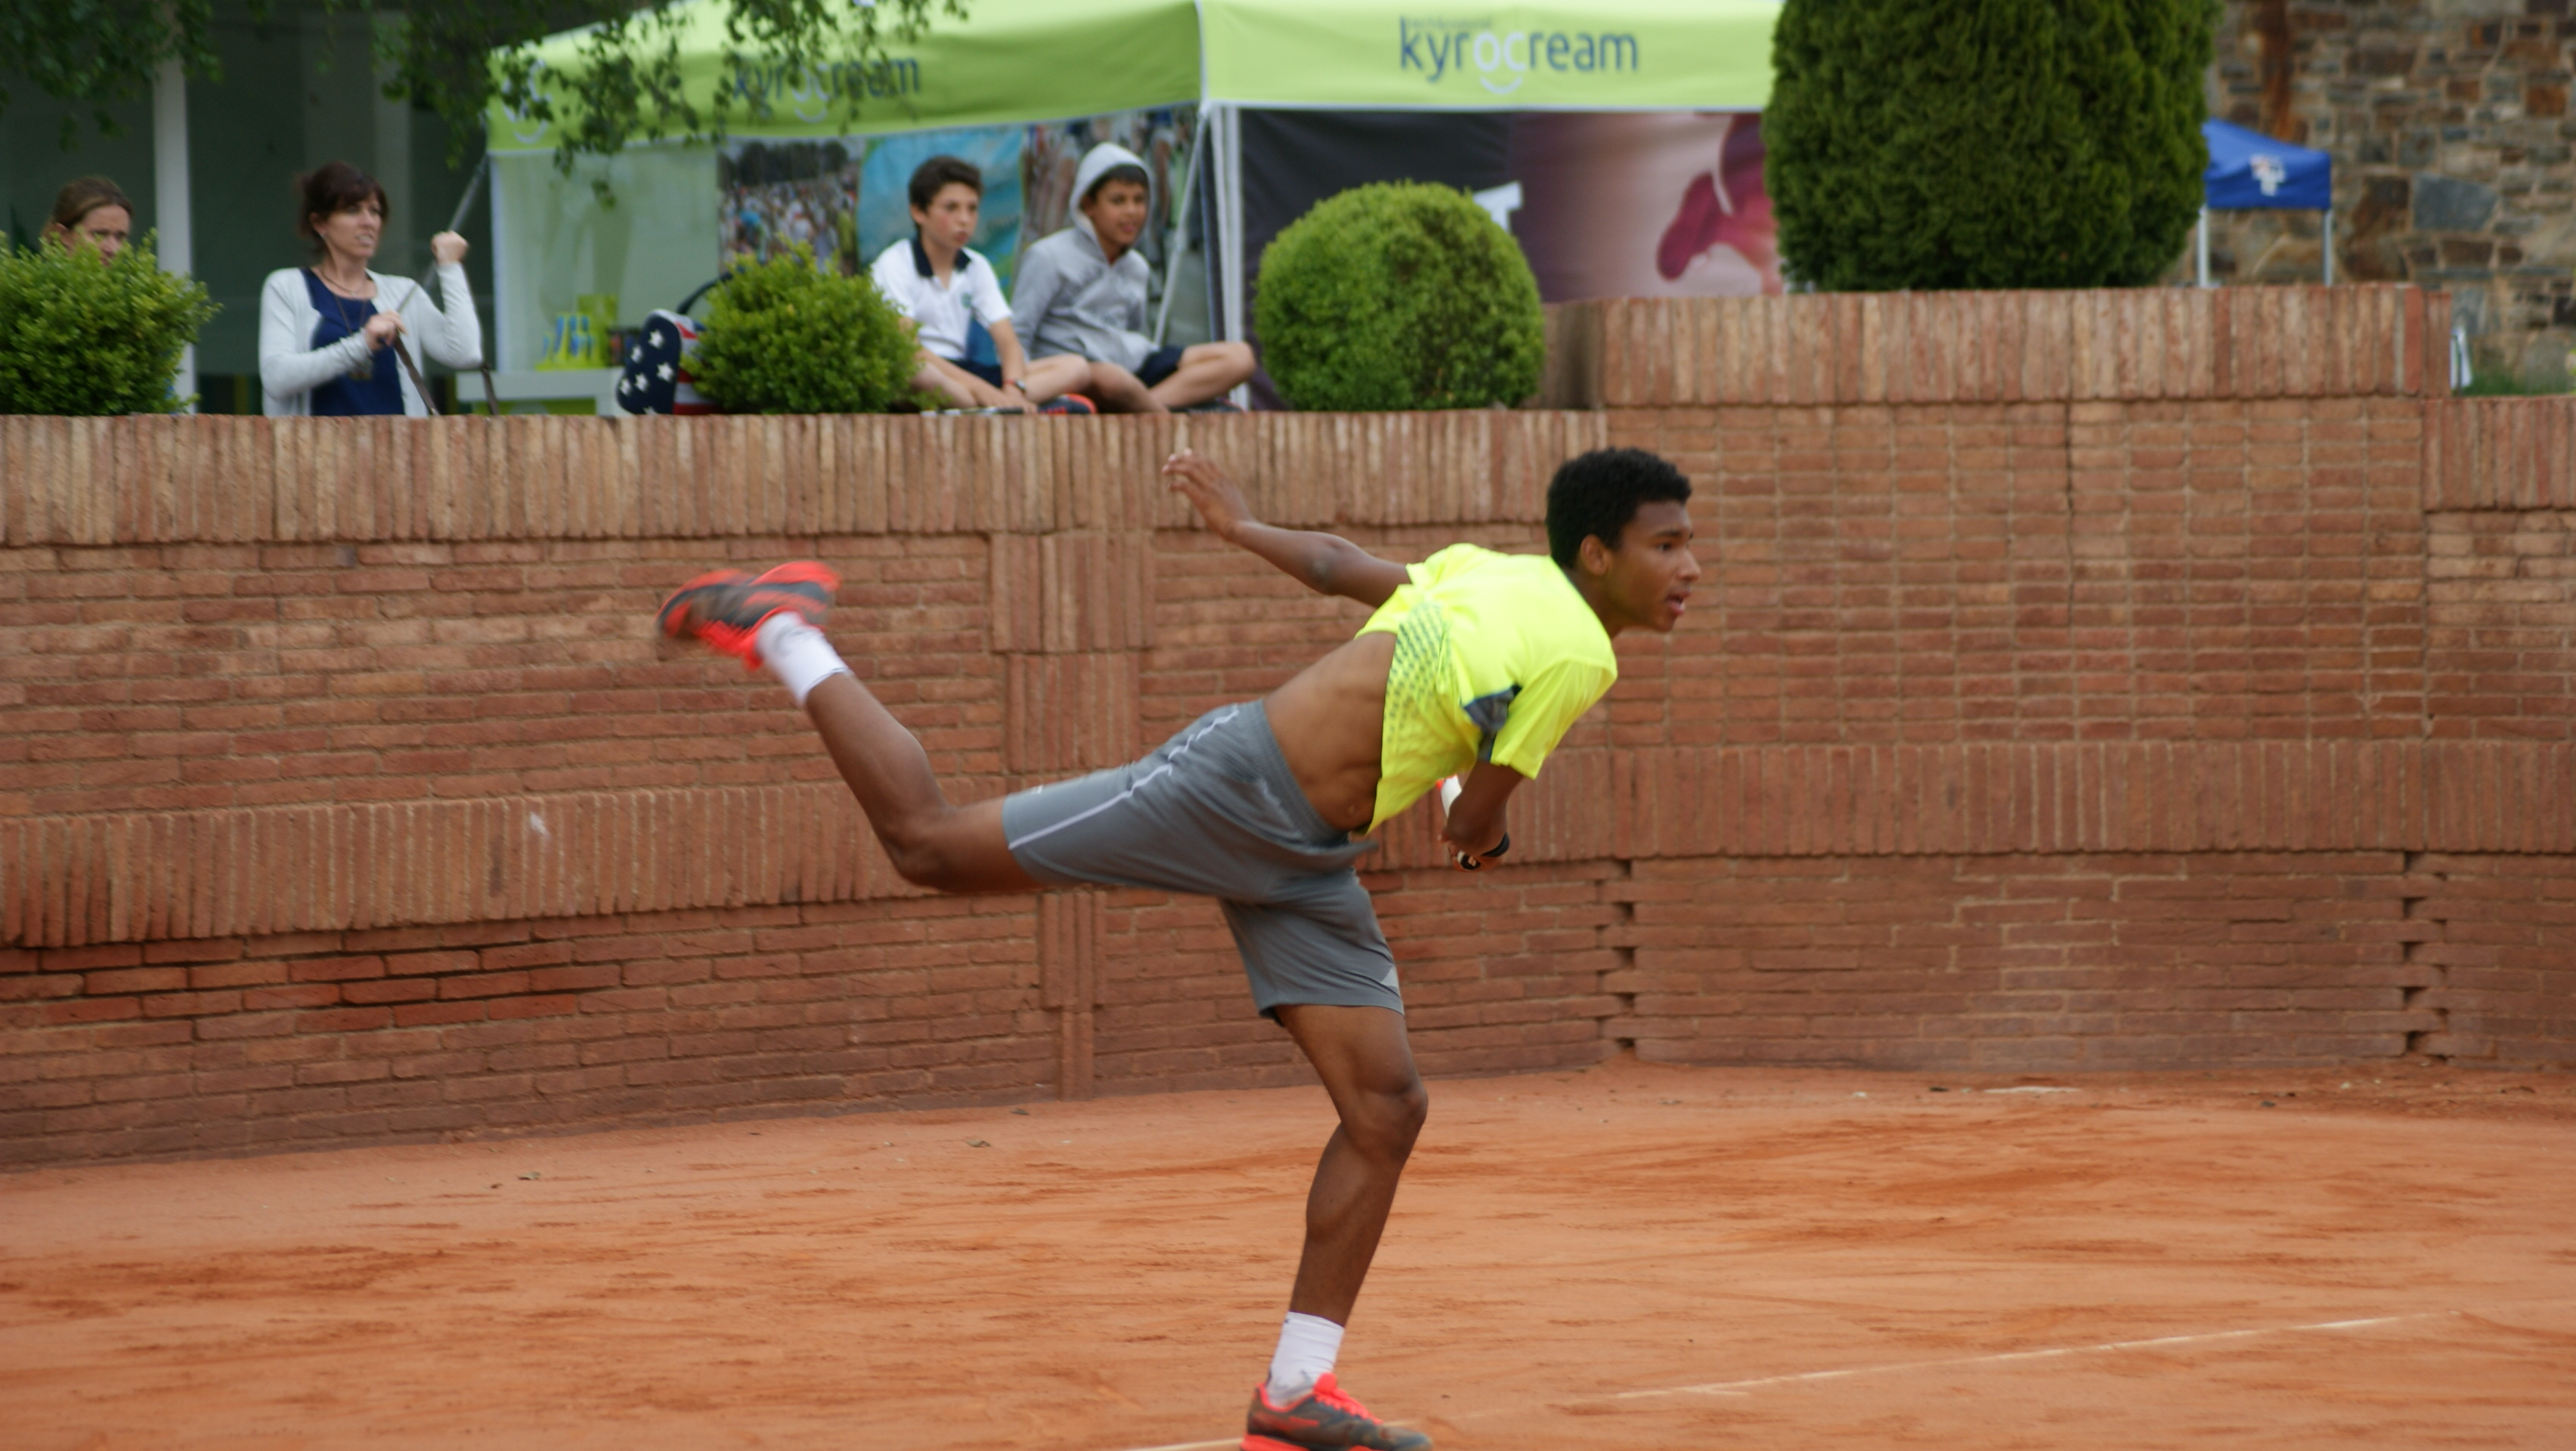 Kyrocream at the ITF Men's Circuit